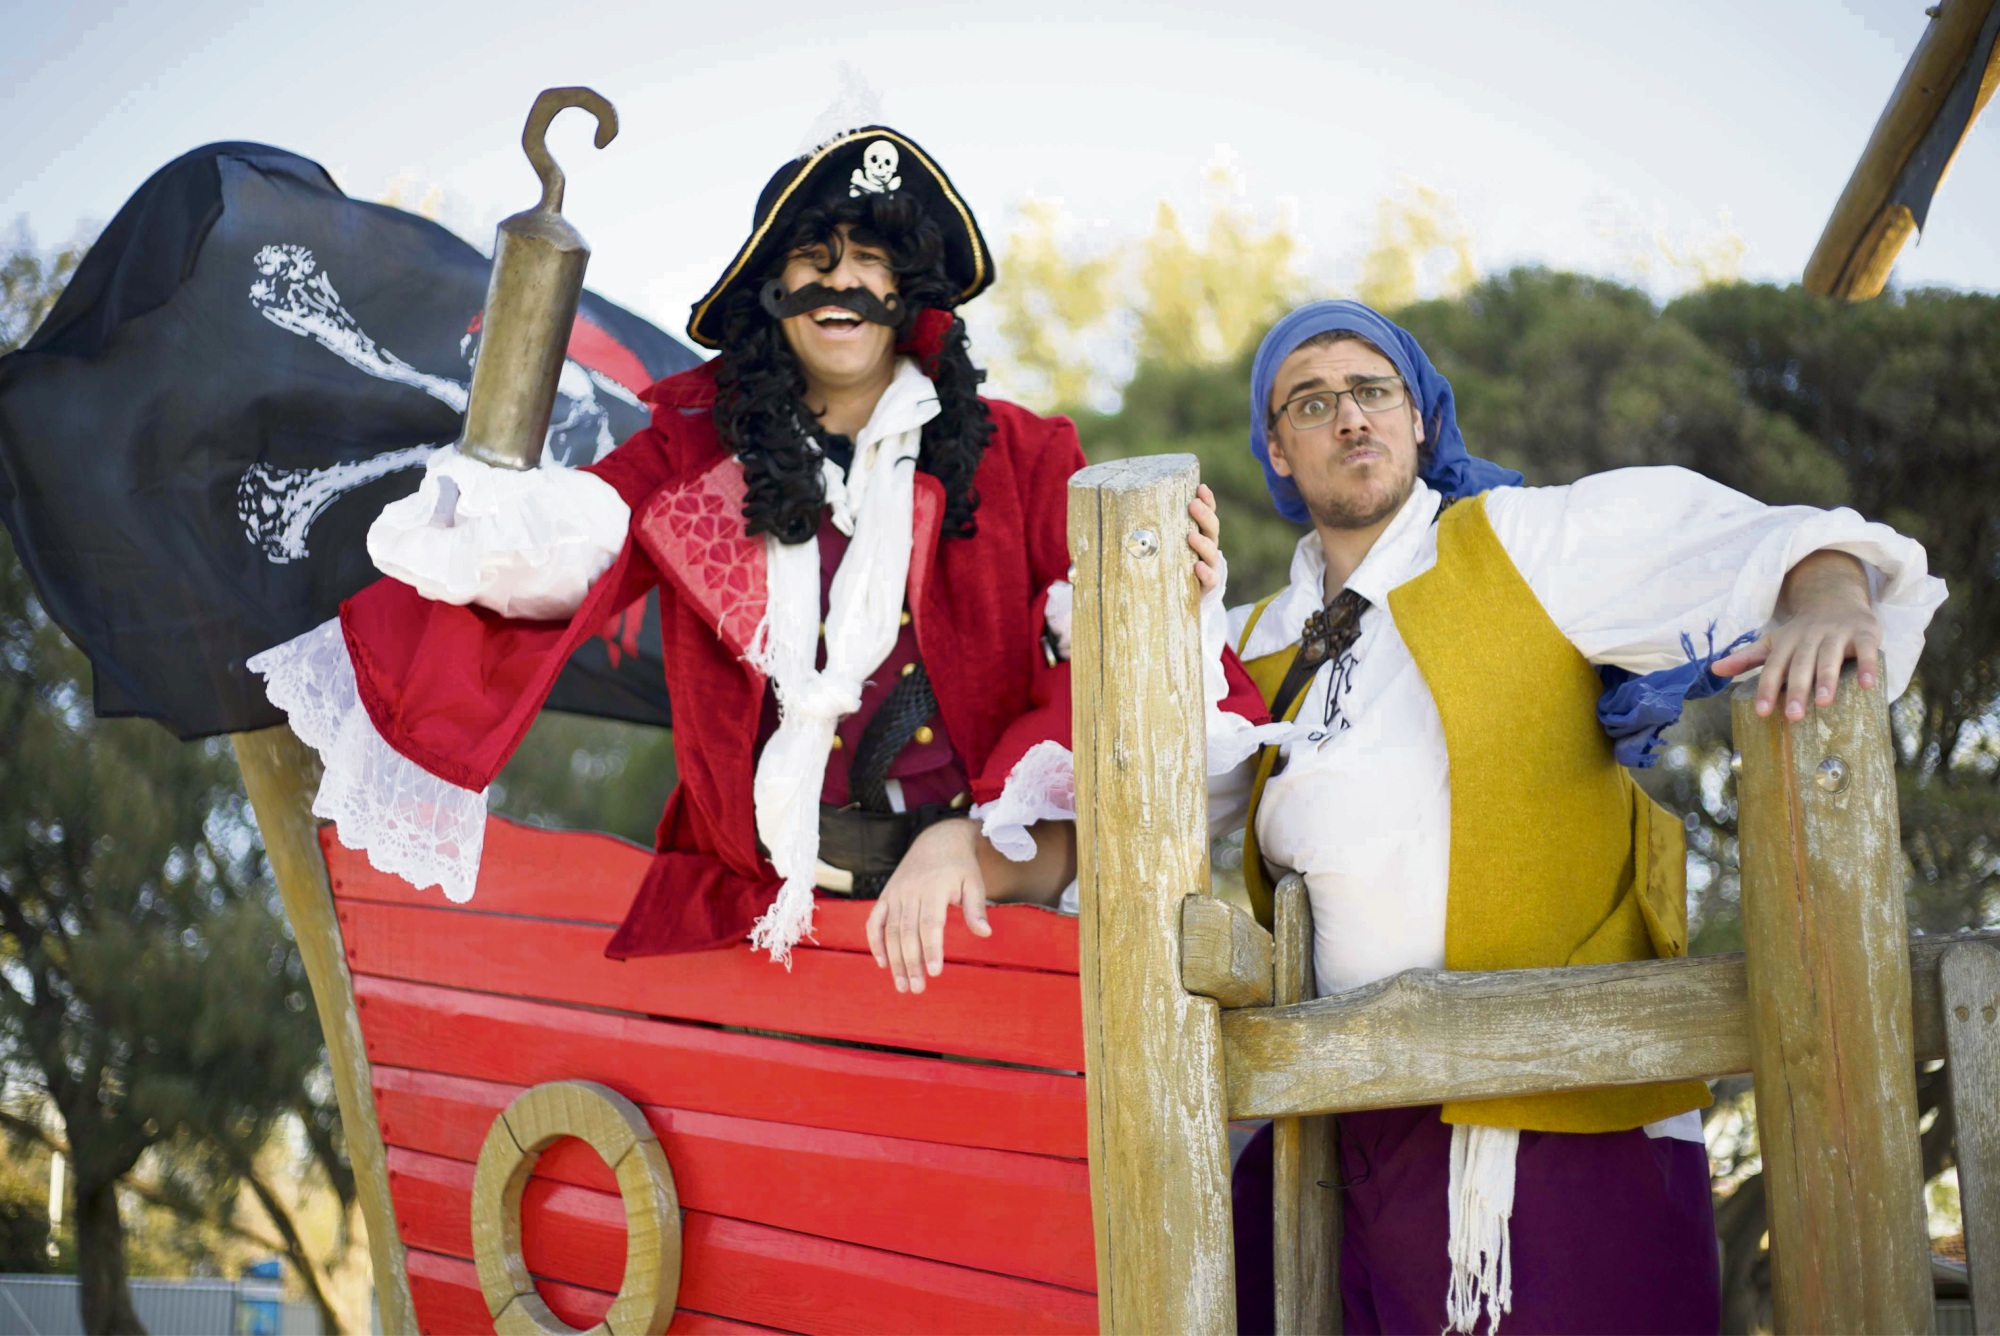 Captain Hooks Menu >> Peter Pan in a Pickle: Christmas pantomime alive and well in Joondalup | Community News Group